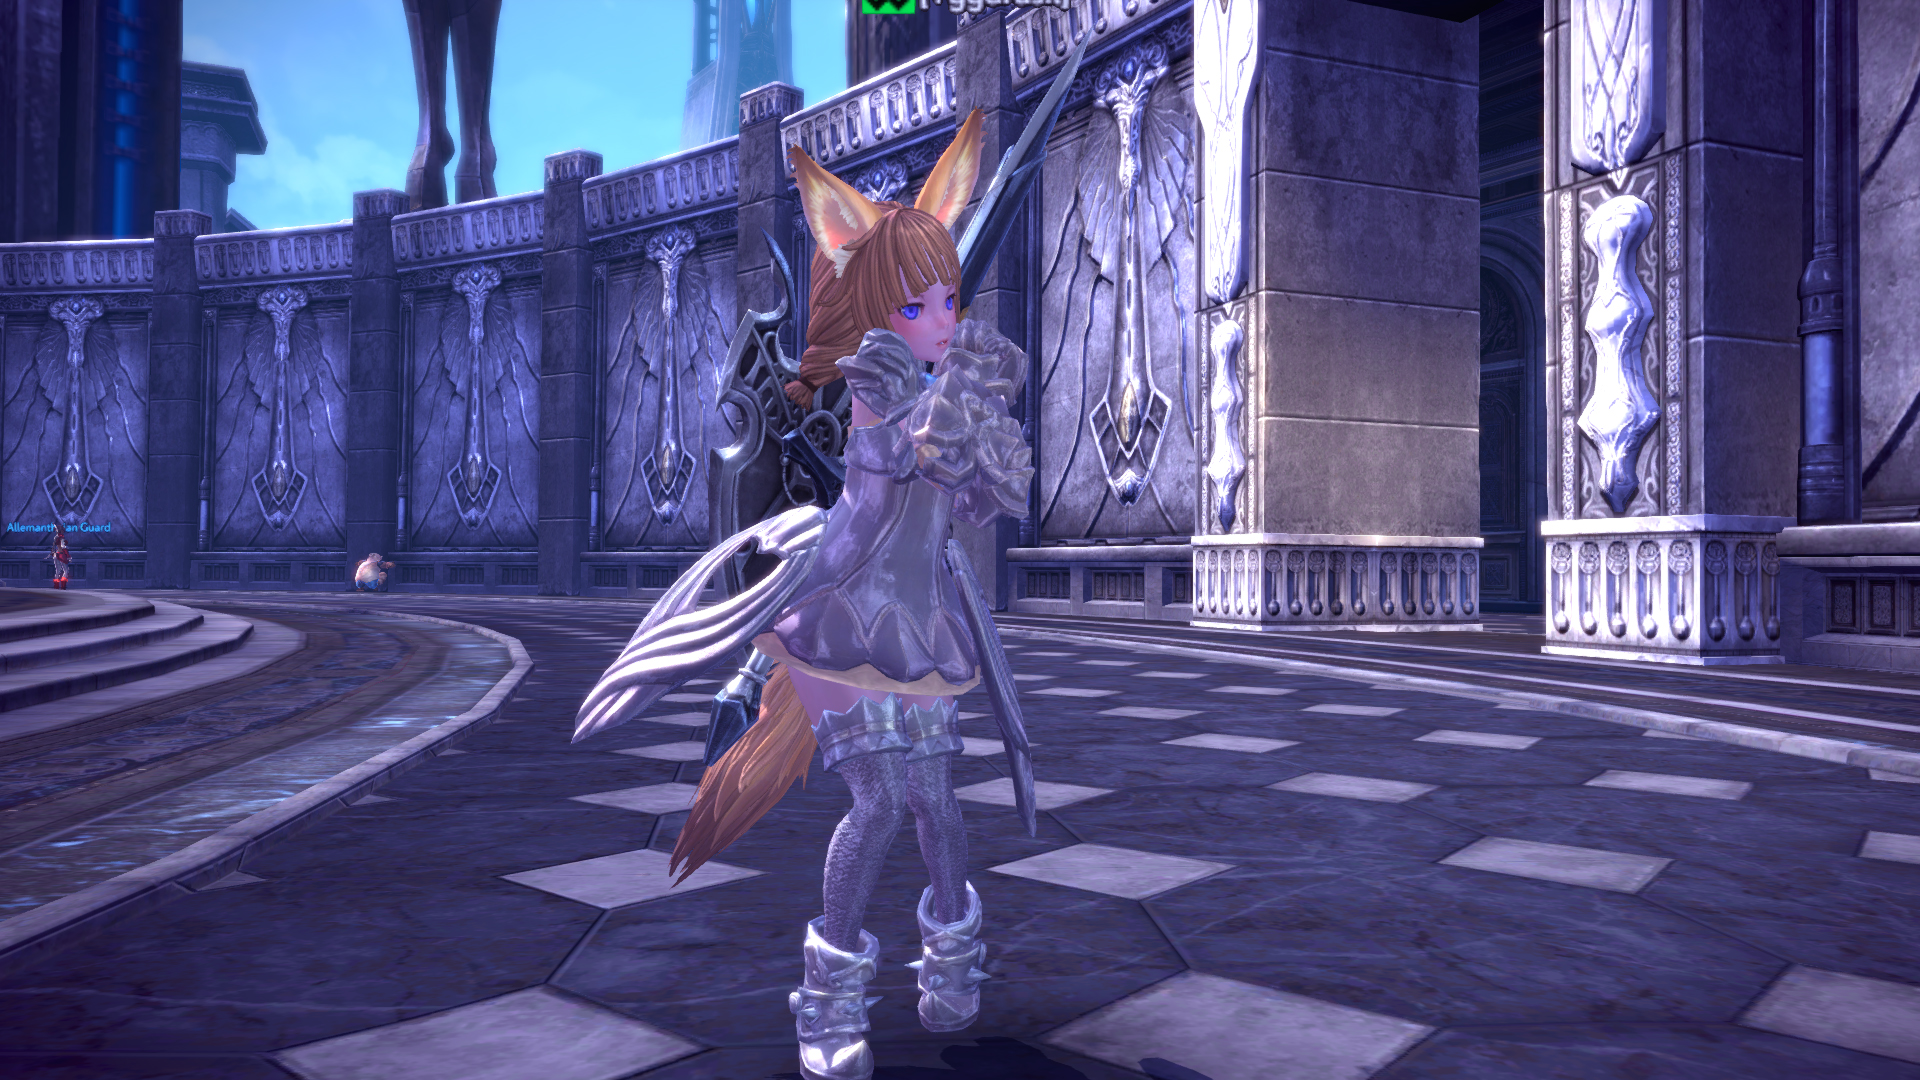 kipling games opening gameplay trailer experience preview online media removed heres tera